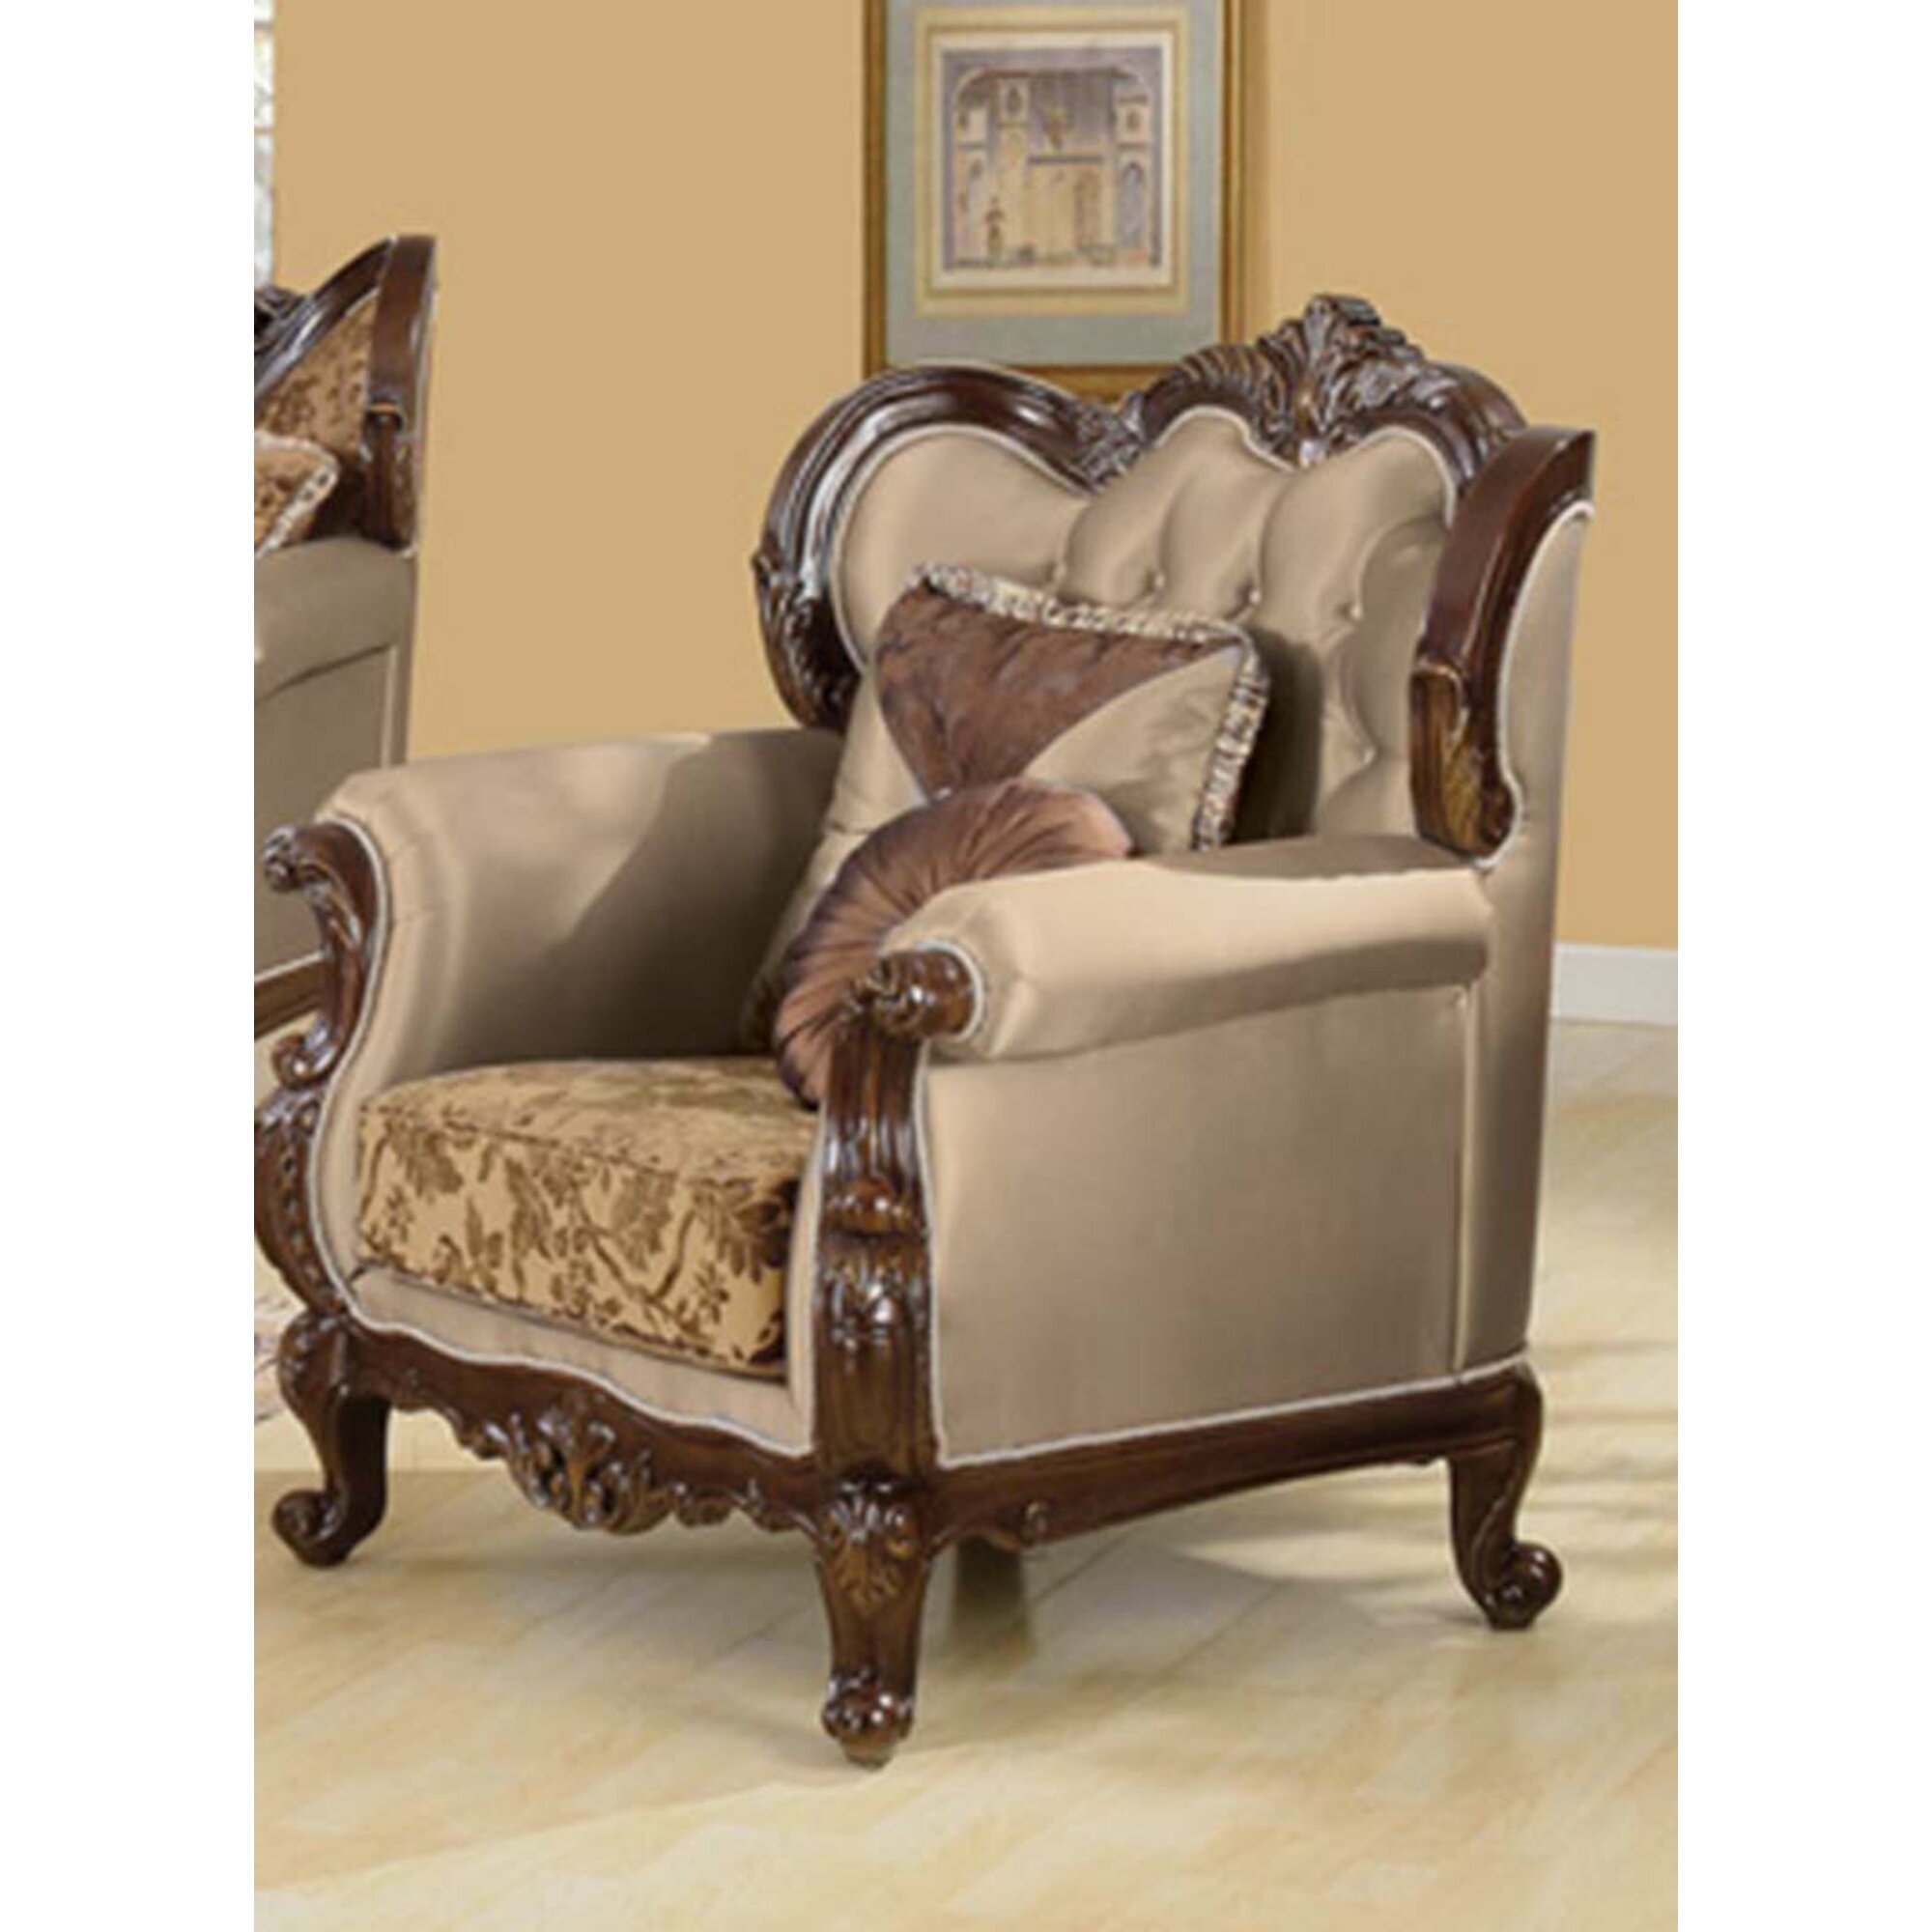 Traditional Living Room Sets 100+ ideas classic living room sets on www.vouum